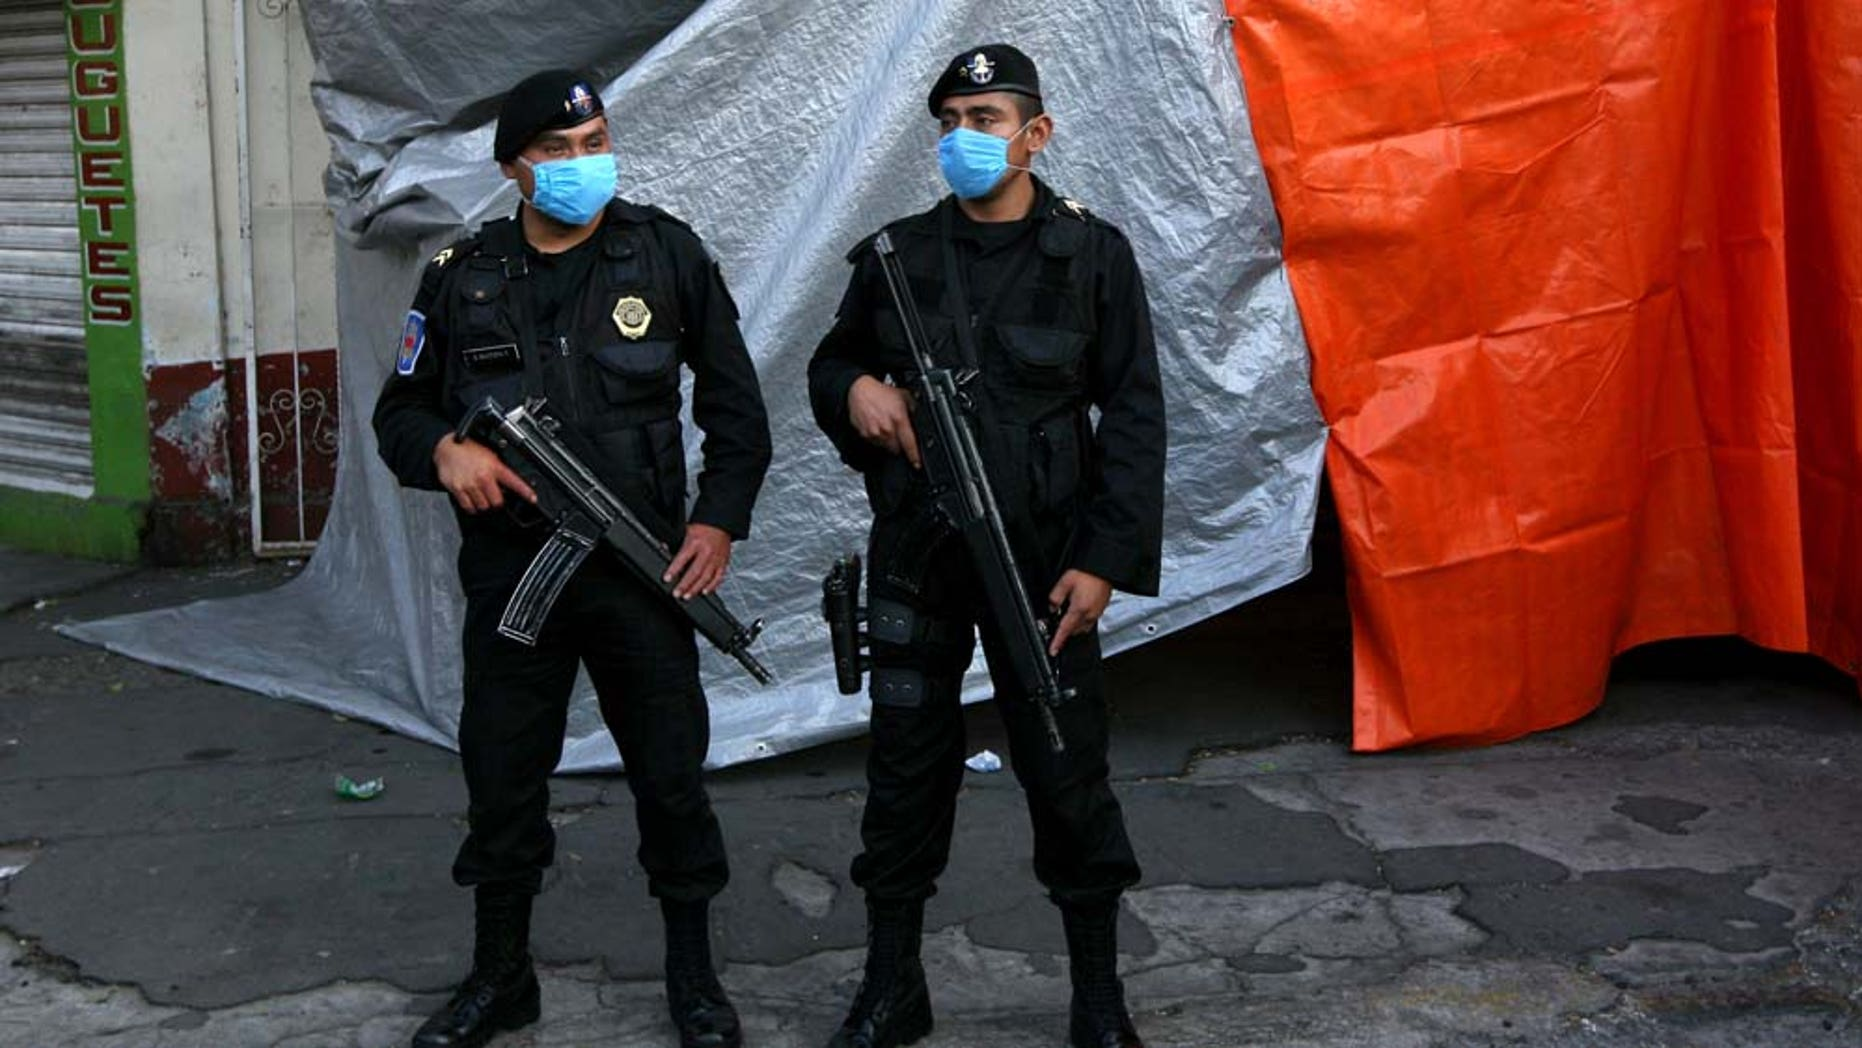 Mexico City police guard a refrigerated truck carrying bodies that were found in mass graves in northern Mexico, after it arrived in Mexico City, Thursday April 14, 2011. Mexican investigators found a clandestine grave with six bodies in Tamaulipas state, bringing to 122 the number of bodies found in pits in a region near the U.S. border that is wracked by battling drug cartels, authorities said Wednesday. (AP Photo/Marco Ugarte)